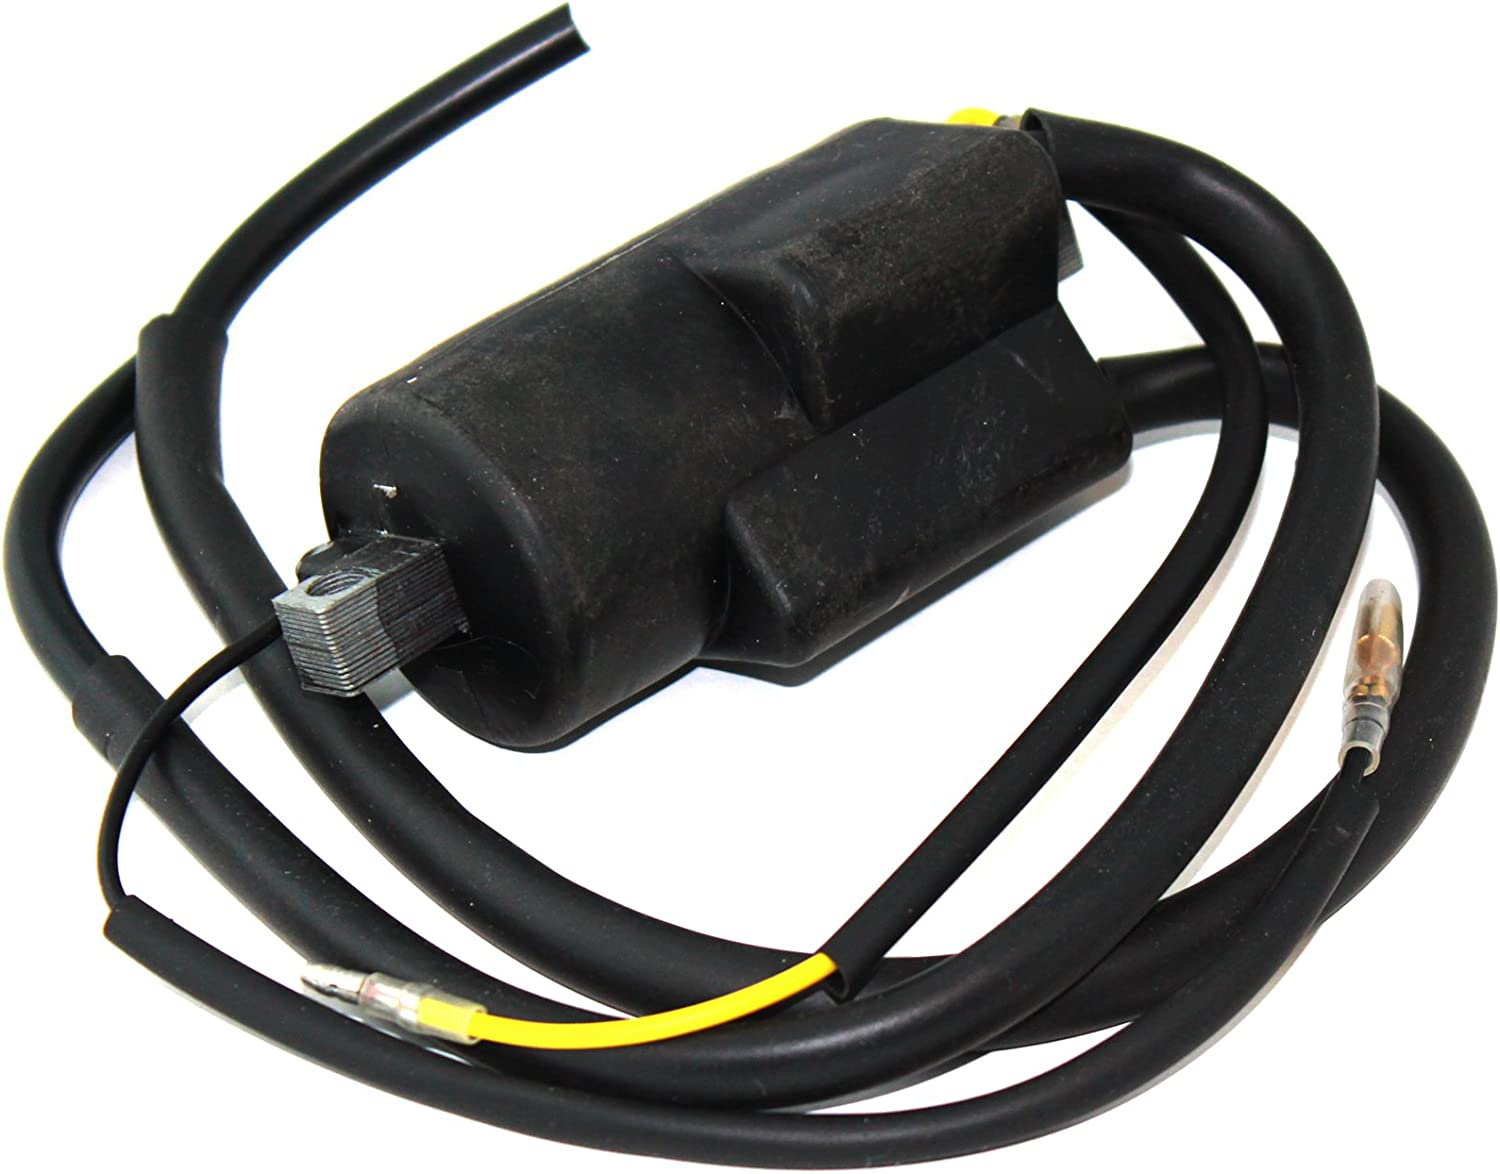 1978 1979 Ignition Coil for Kawasaki KZ400 KZ 400 B1 B2 Warranty